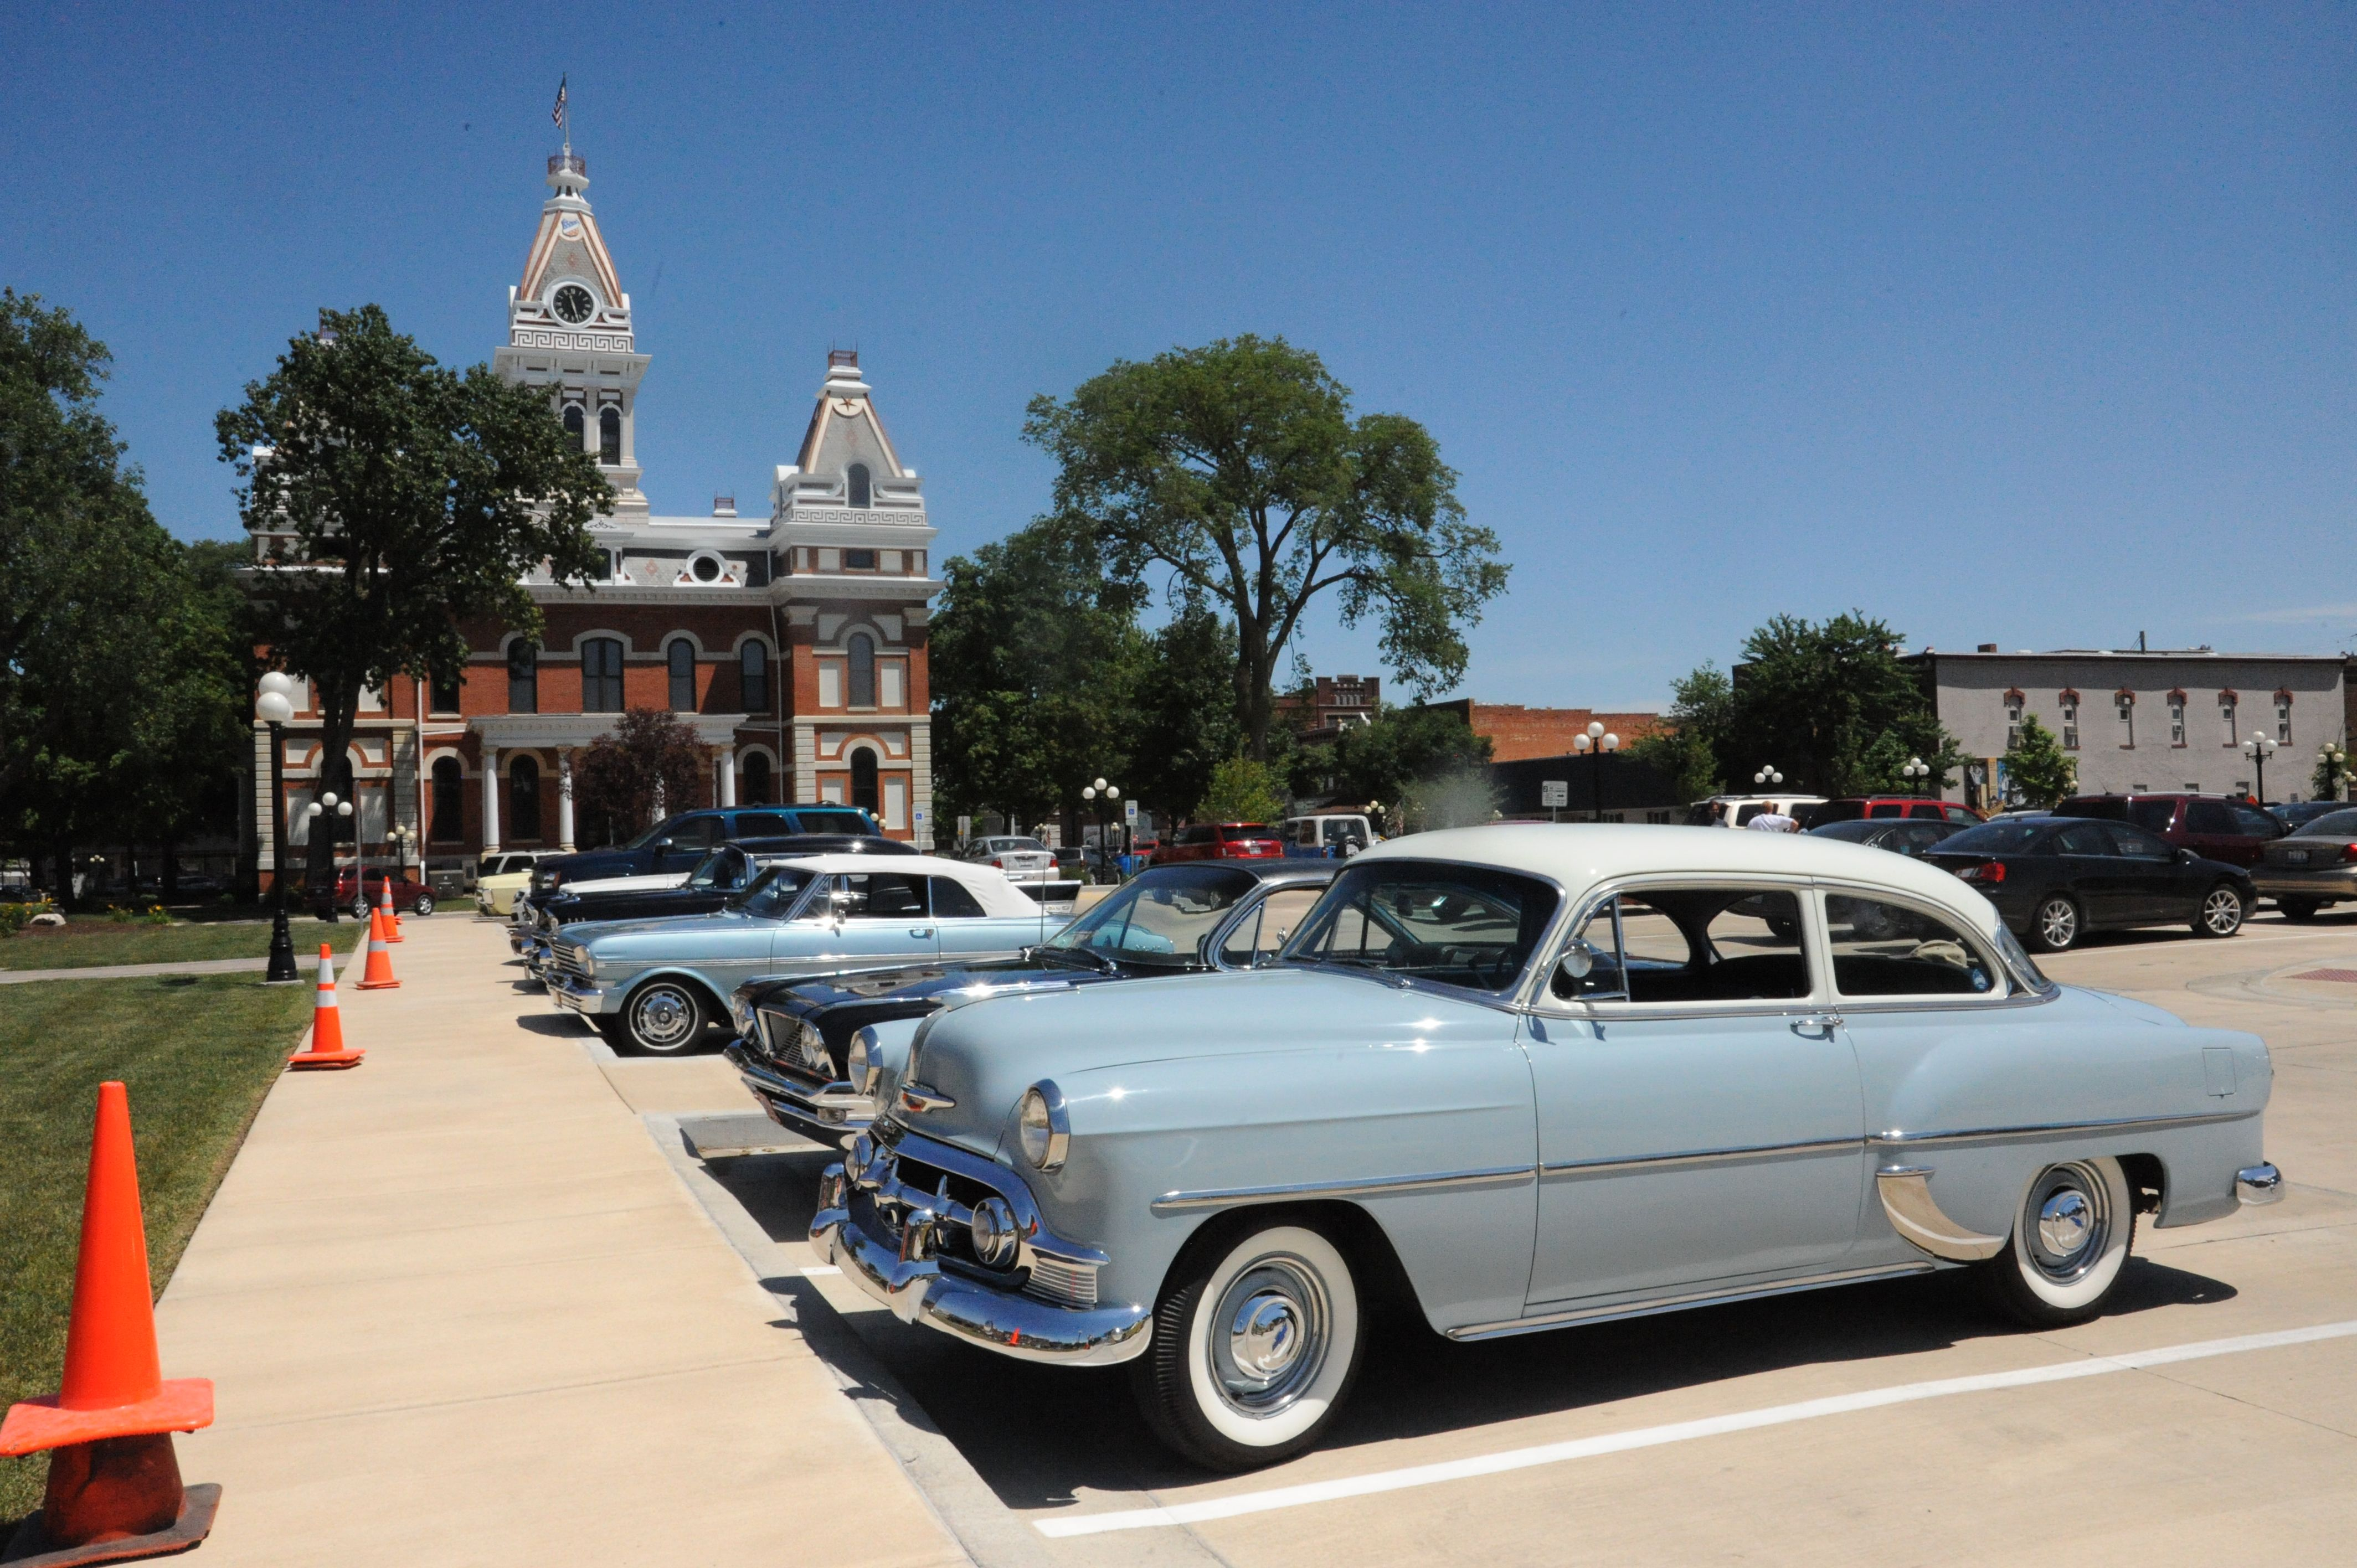 Classic cars with Livingston County Courthouse in background.